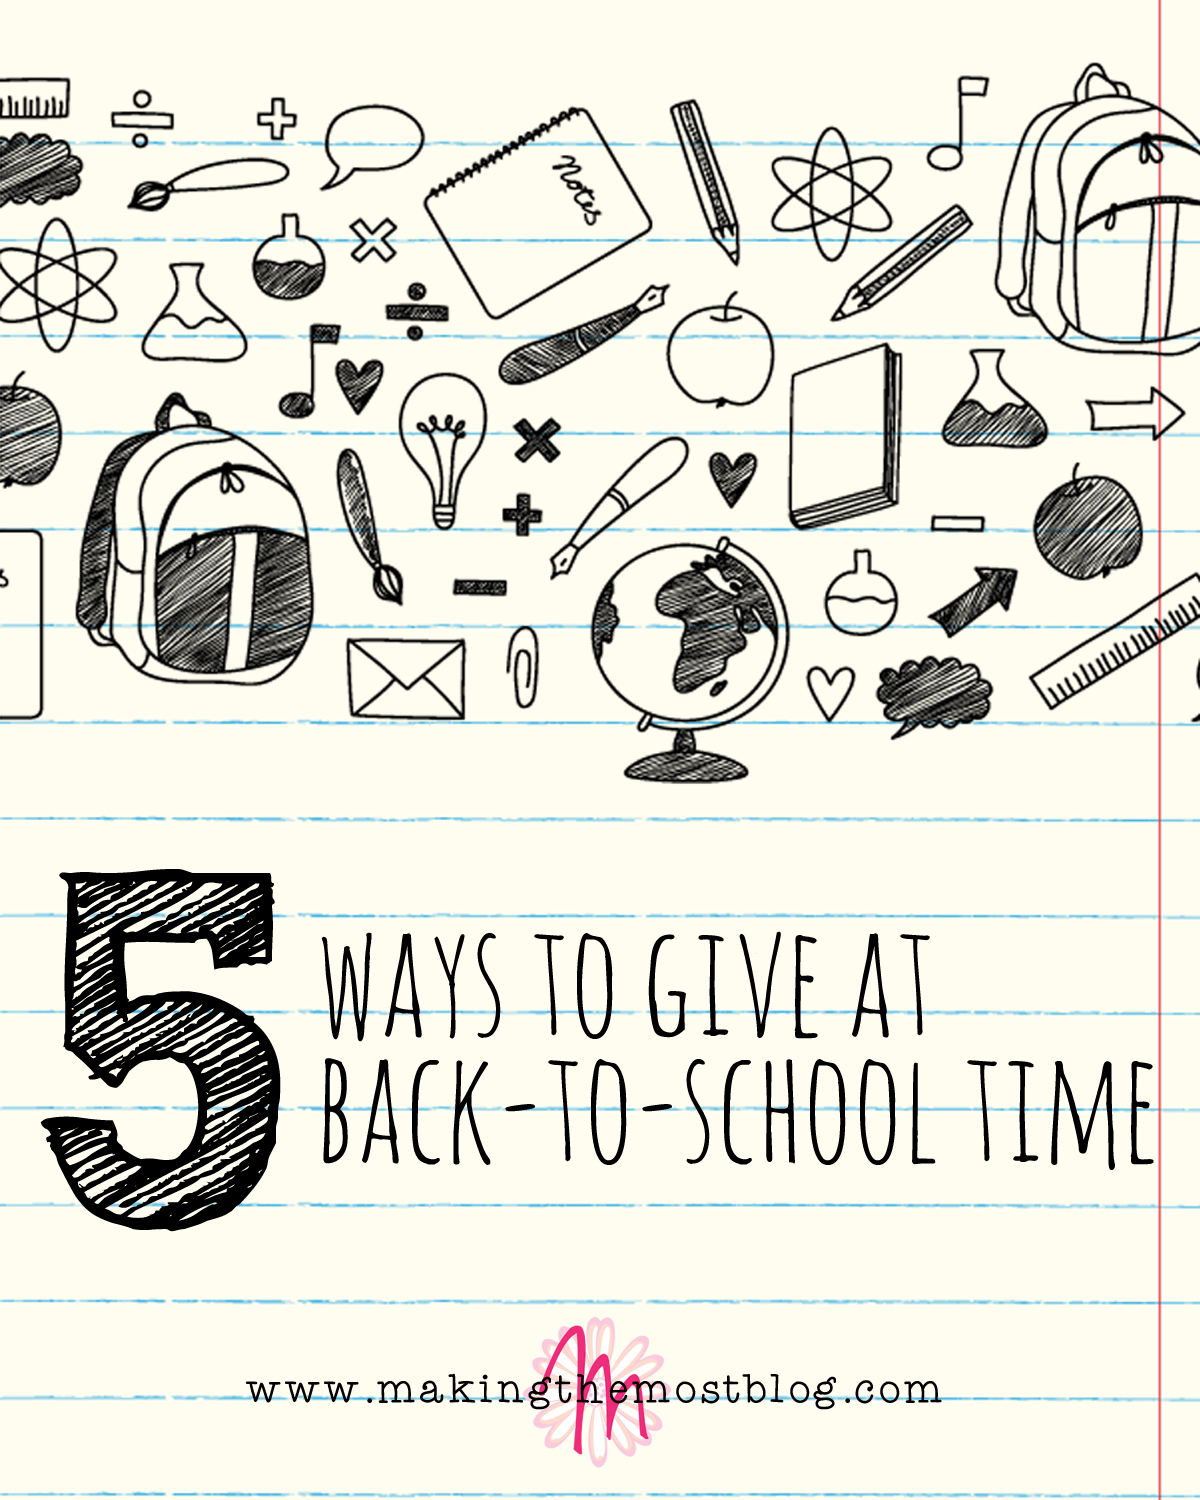 5 Ways to Give at Back-to-School Time | Making the Most Blog